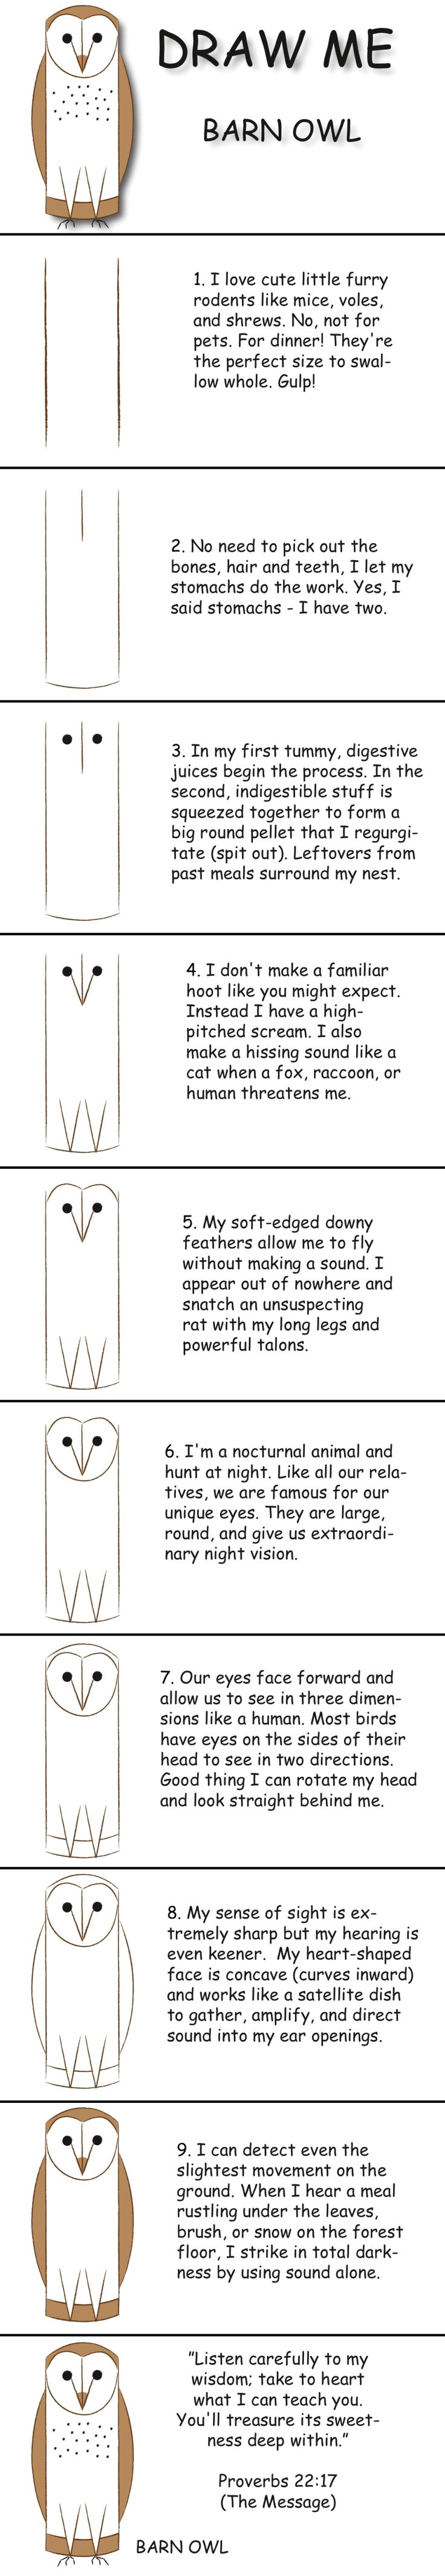 Draw A Barn Owl In 10 Easy Steps And Learn Fun Facts About Its Life